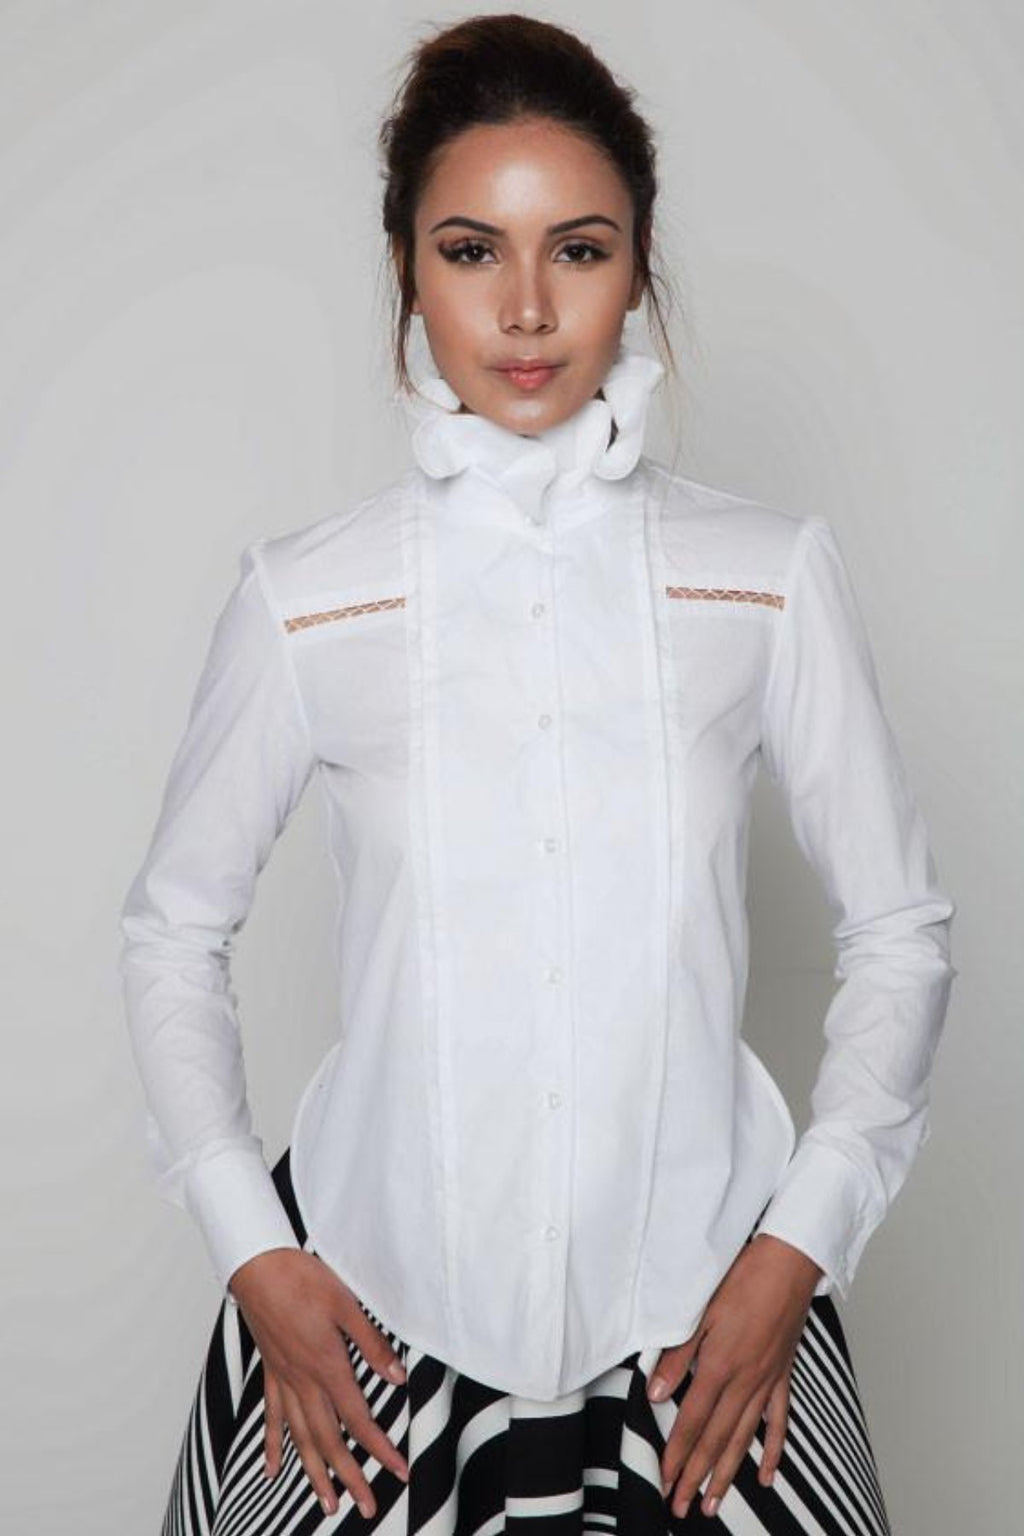 Australian made fashion - Orocéo Castro Shirt, Shirts, Orocéo Castro, The Dress Collective